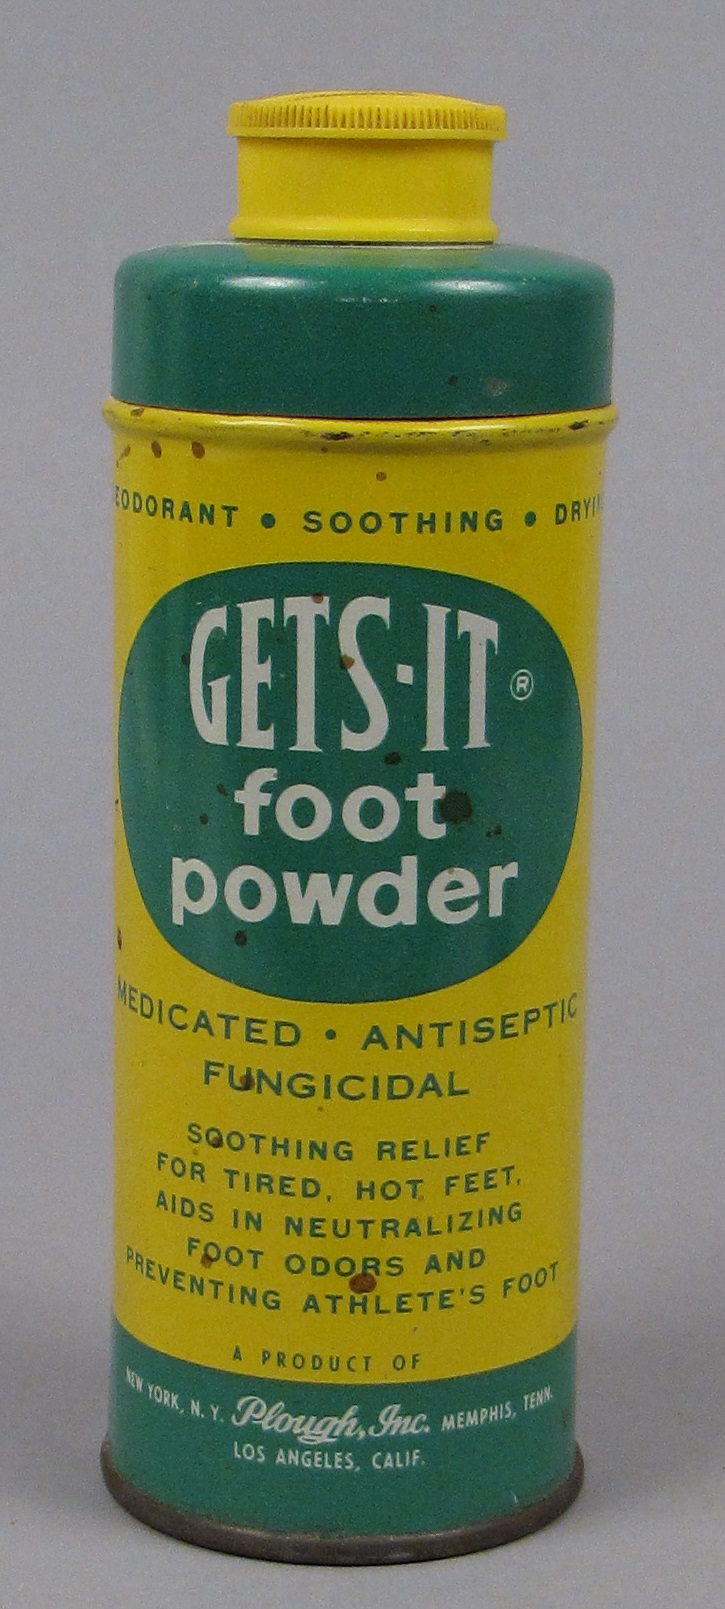 Gets-It Foot Powder